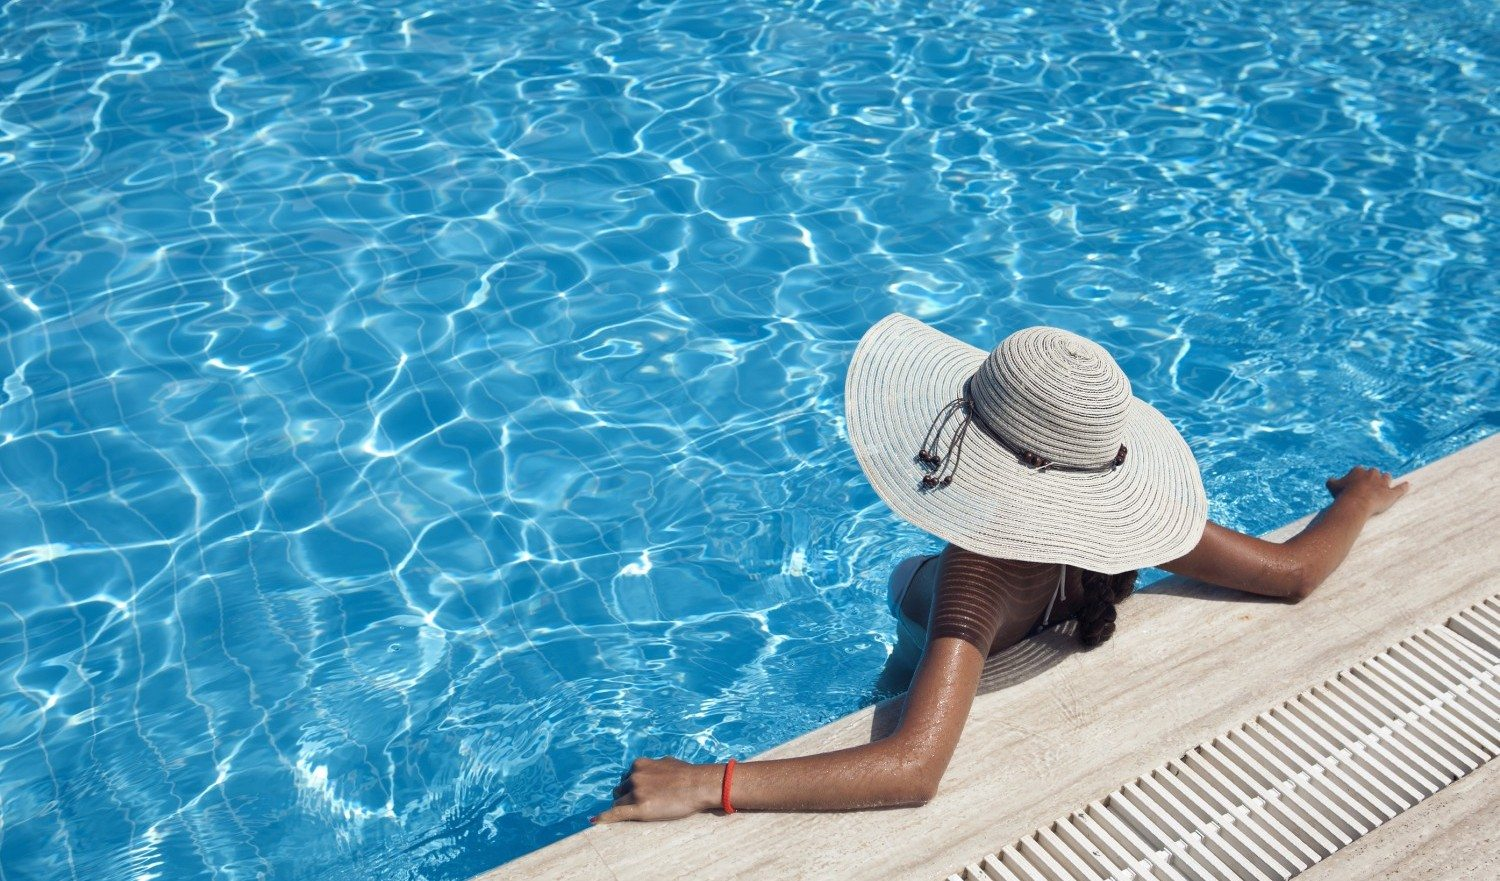 Young woman relaxing by the swimmingpool